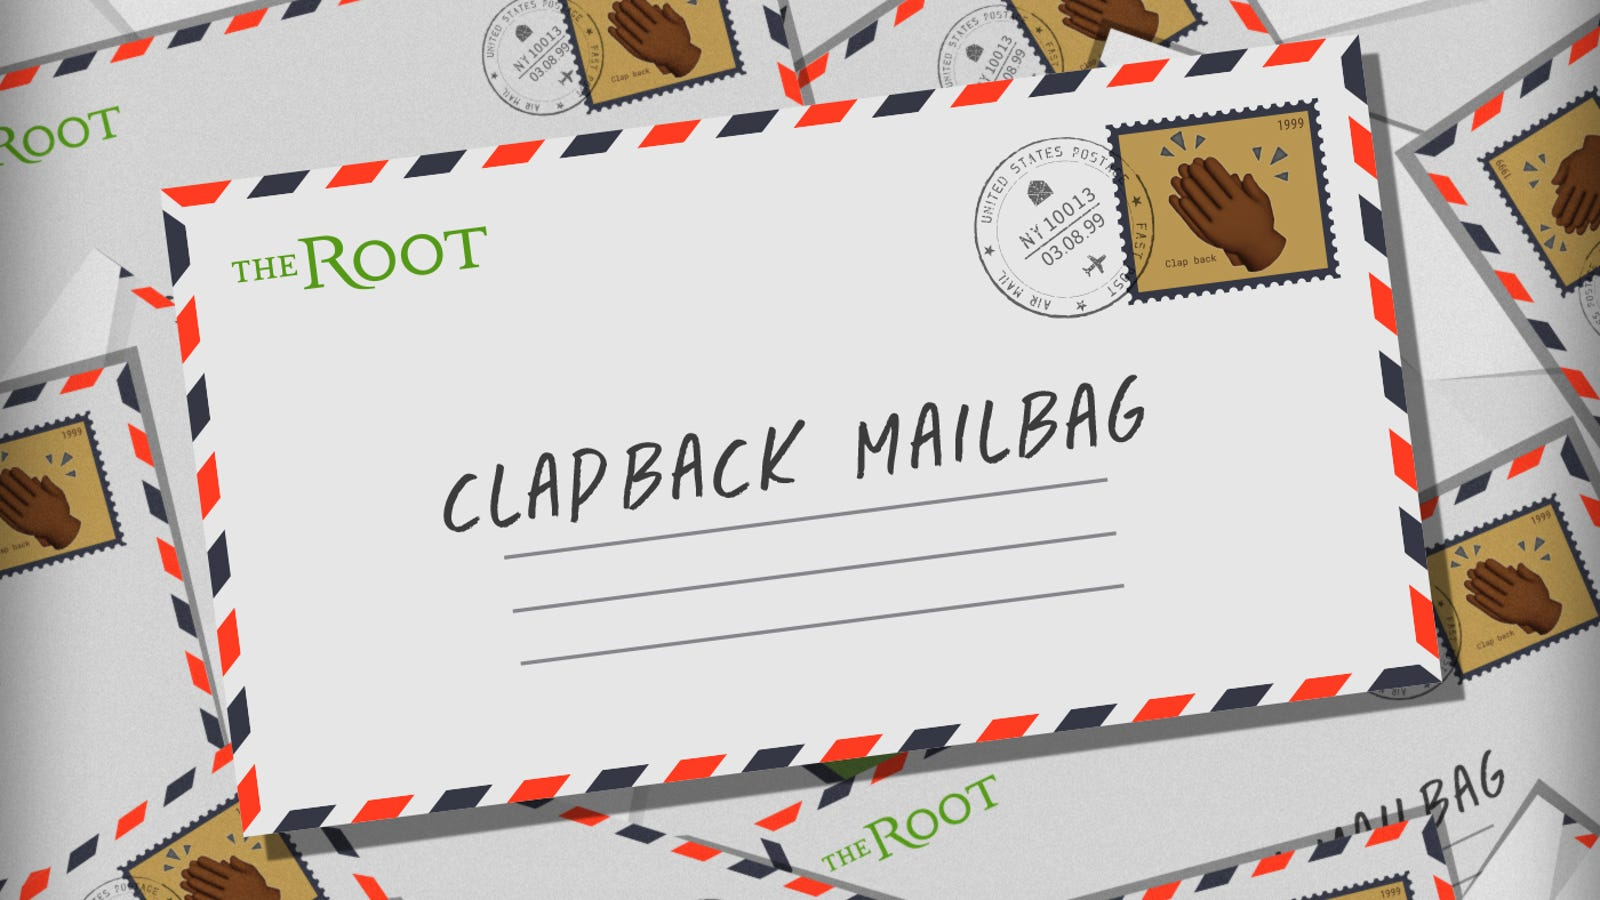 The Root's Clapback Mailbag: We Forgot to Mention...